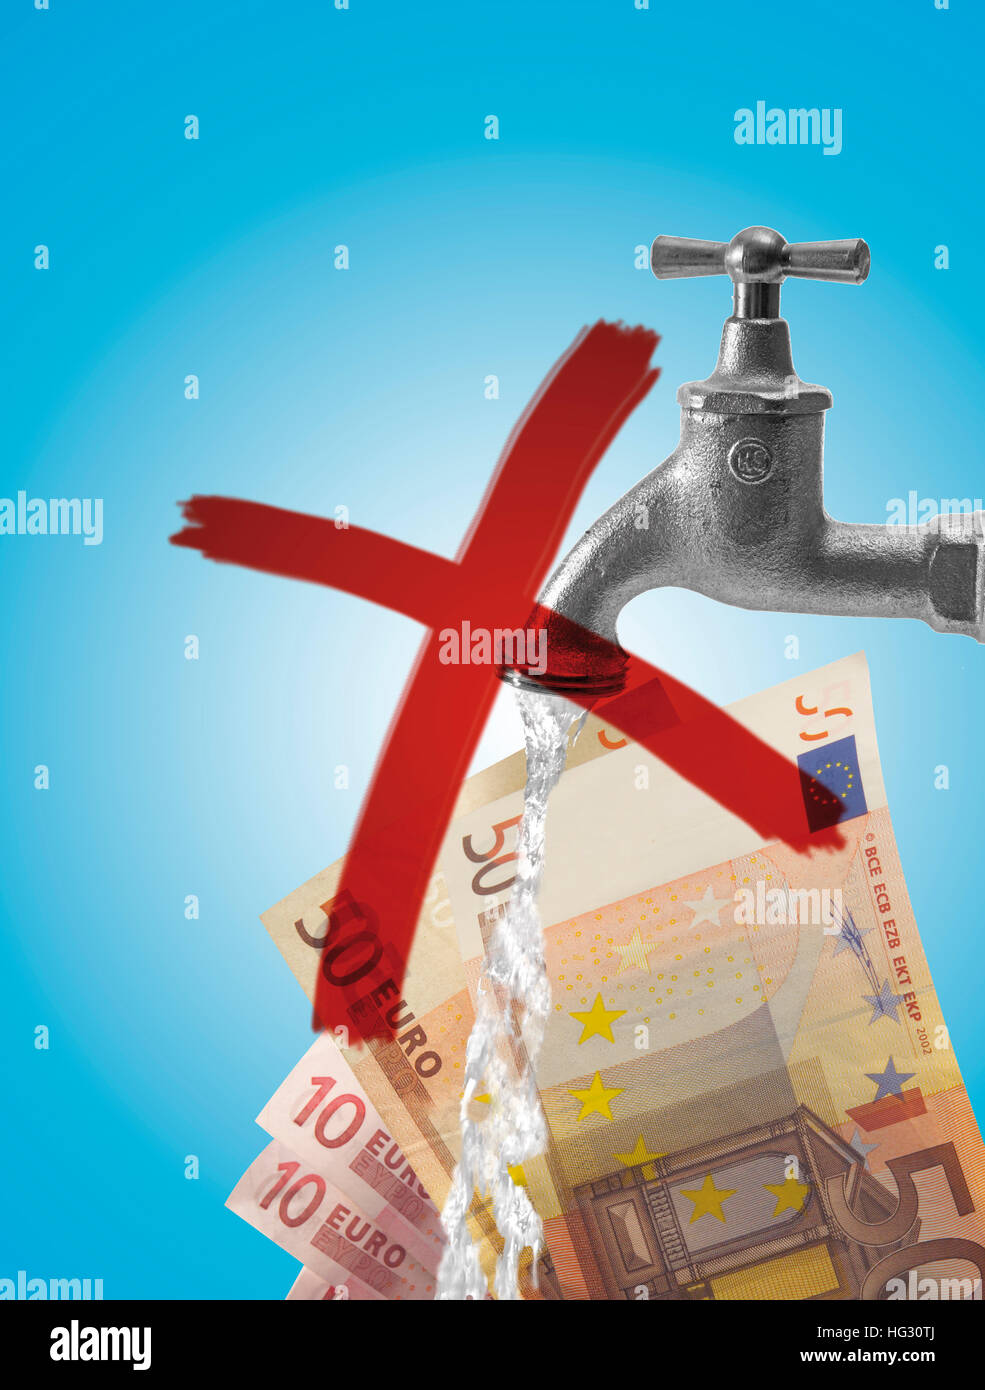 Crossed-out water tap (faucet) and Euro bills (composing shot): symbol for rising water prices - Stock Image